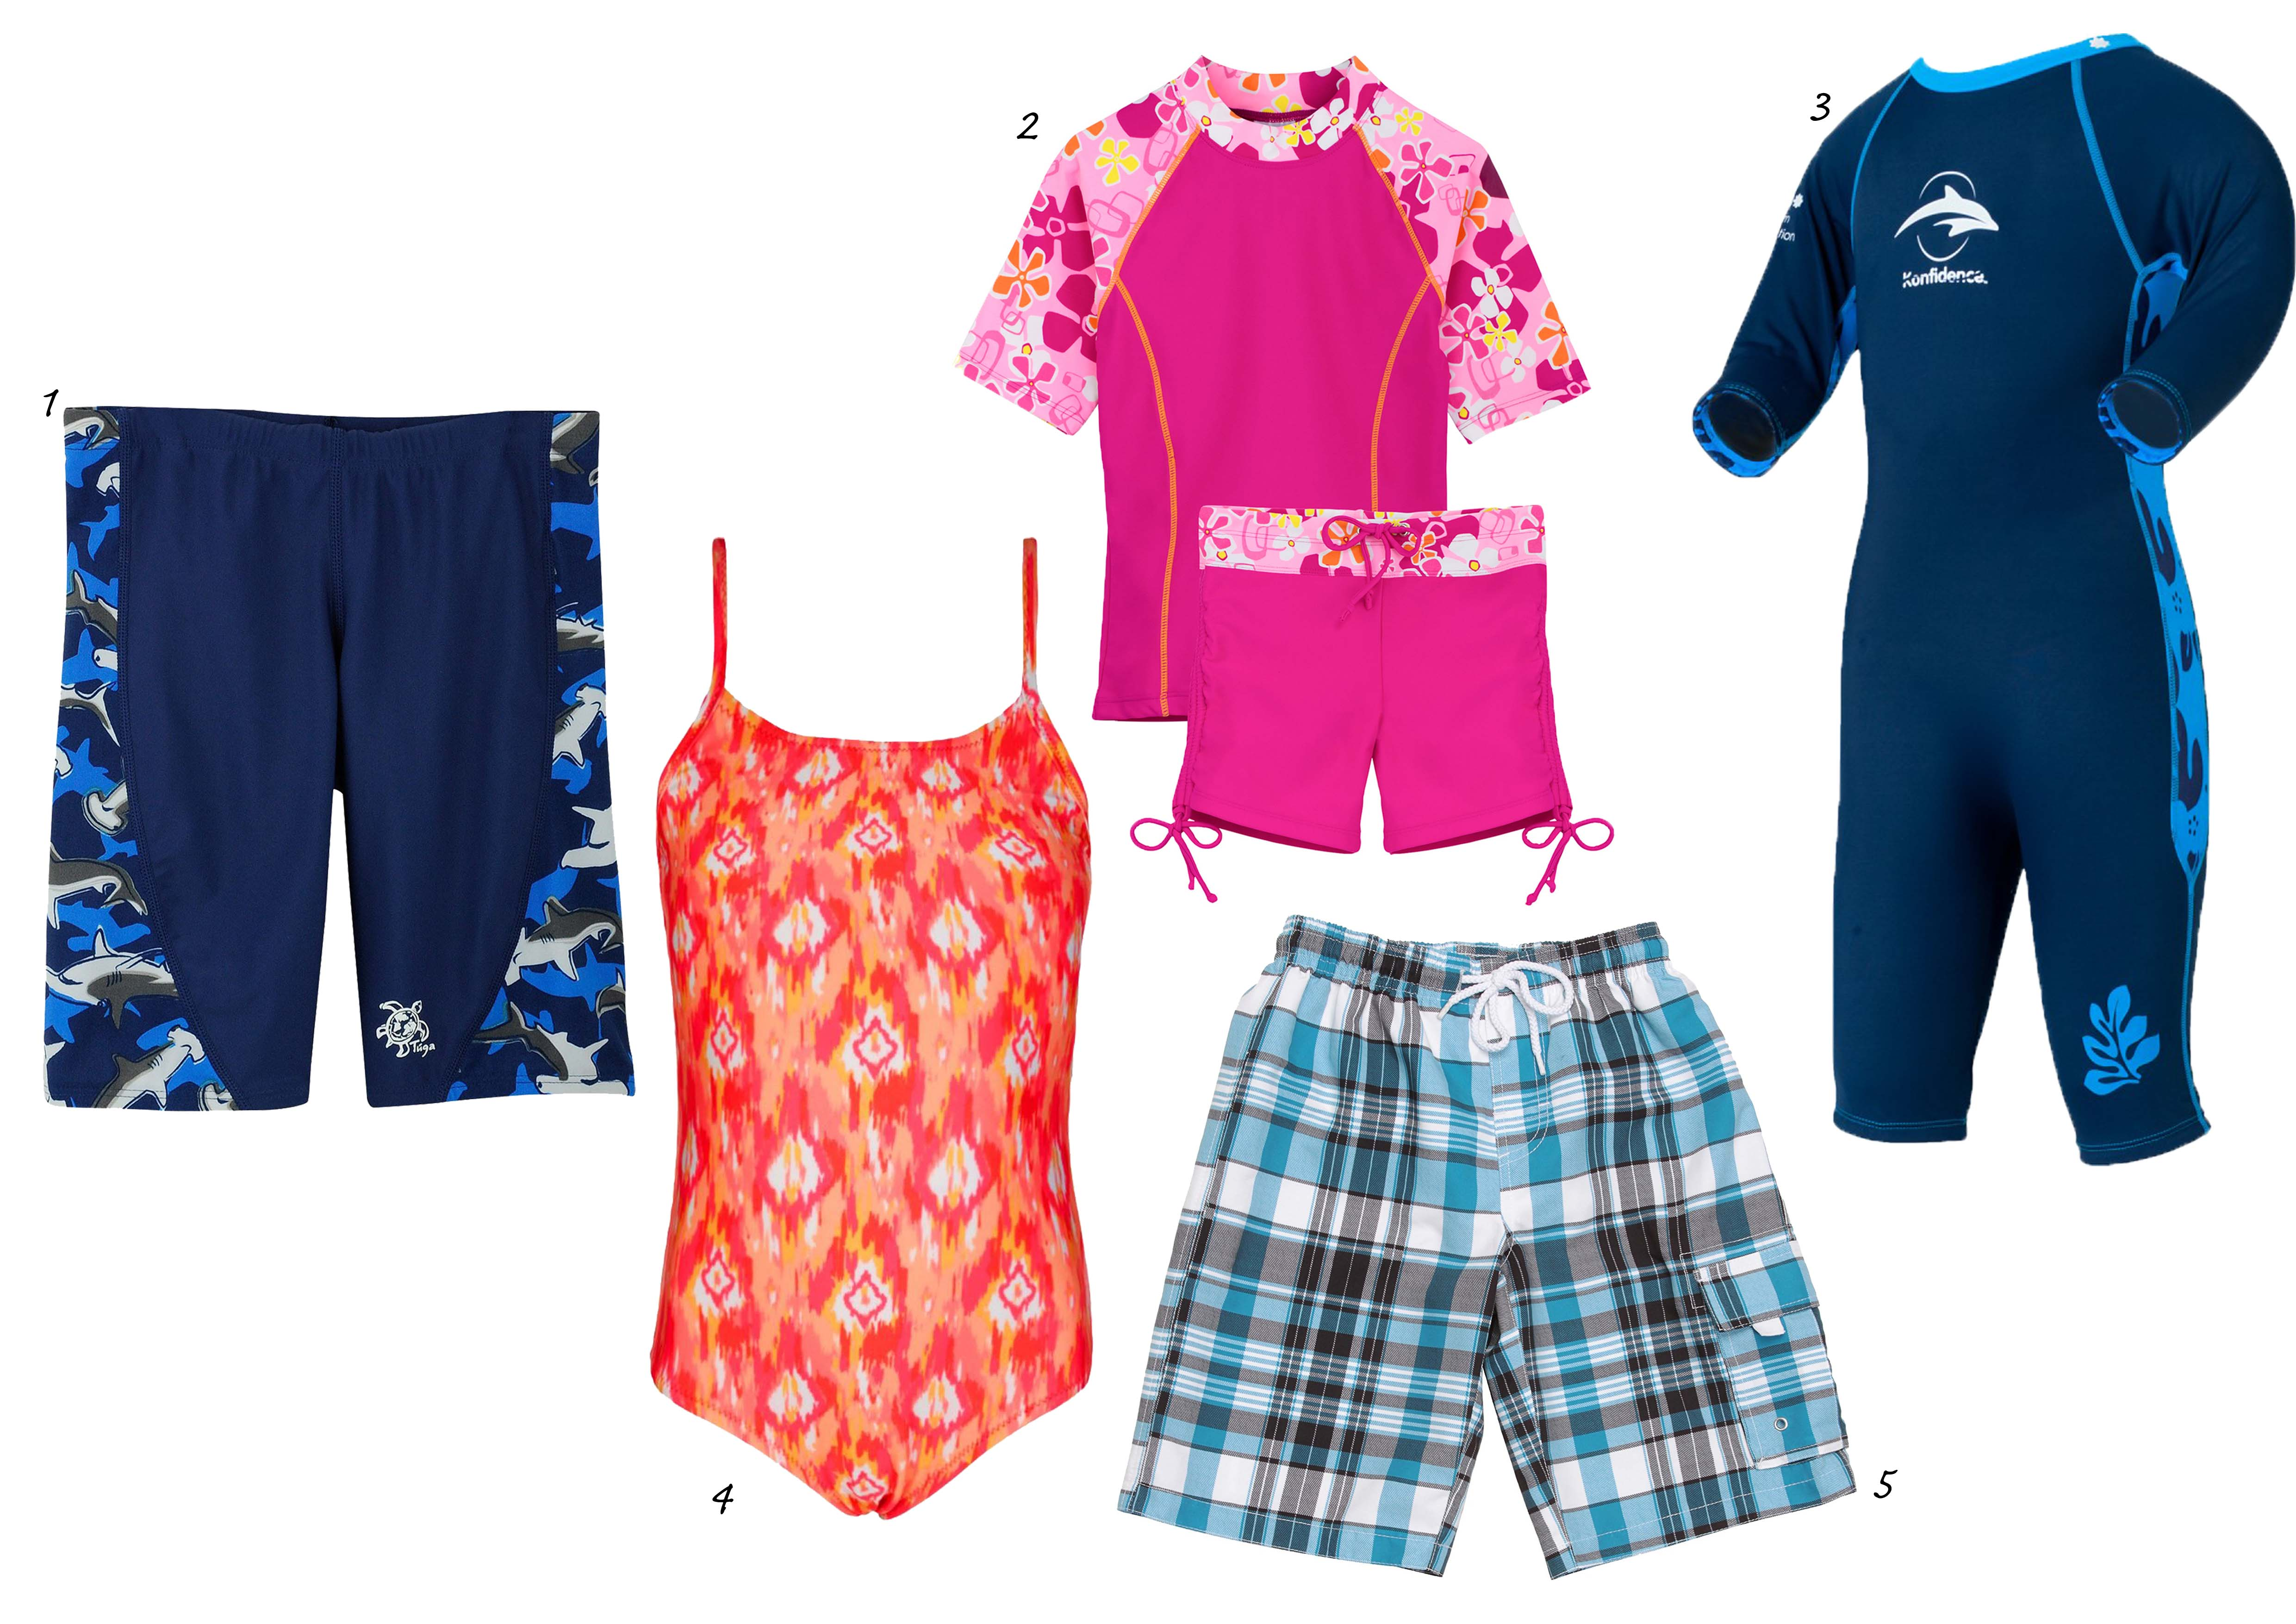 87d9776b81 If so, have you got your little one kitted out with their swimwear yet? Let  us know over on Facebook and Twitter.